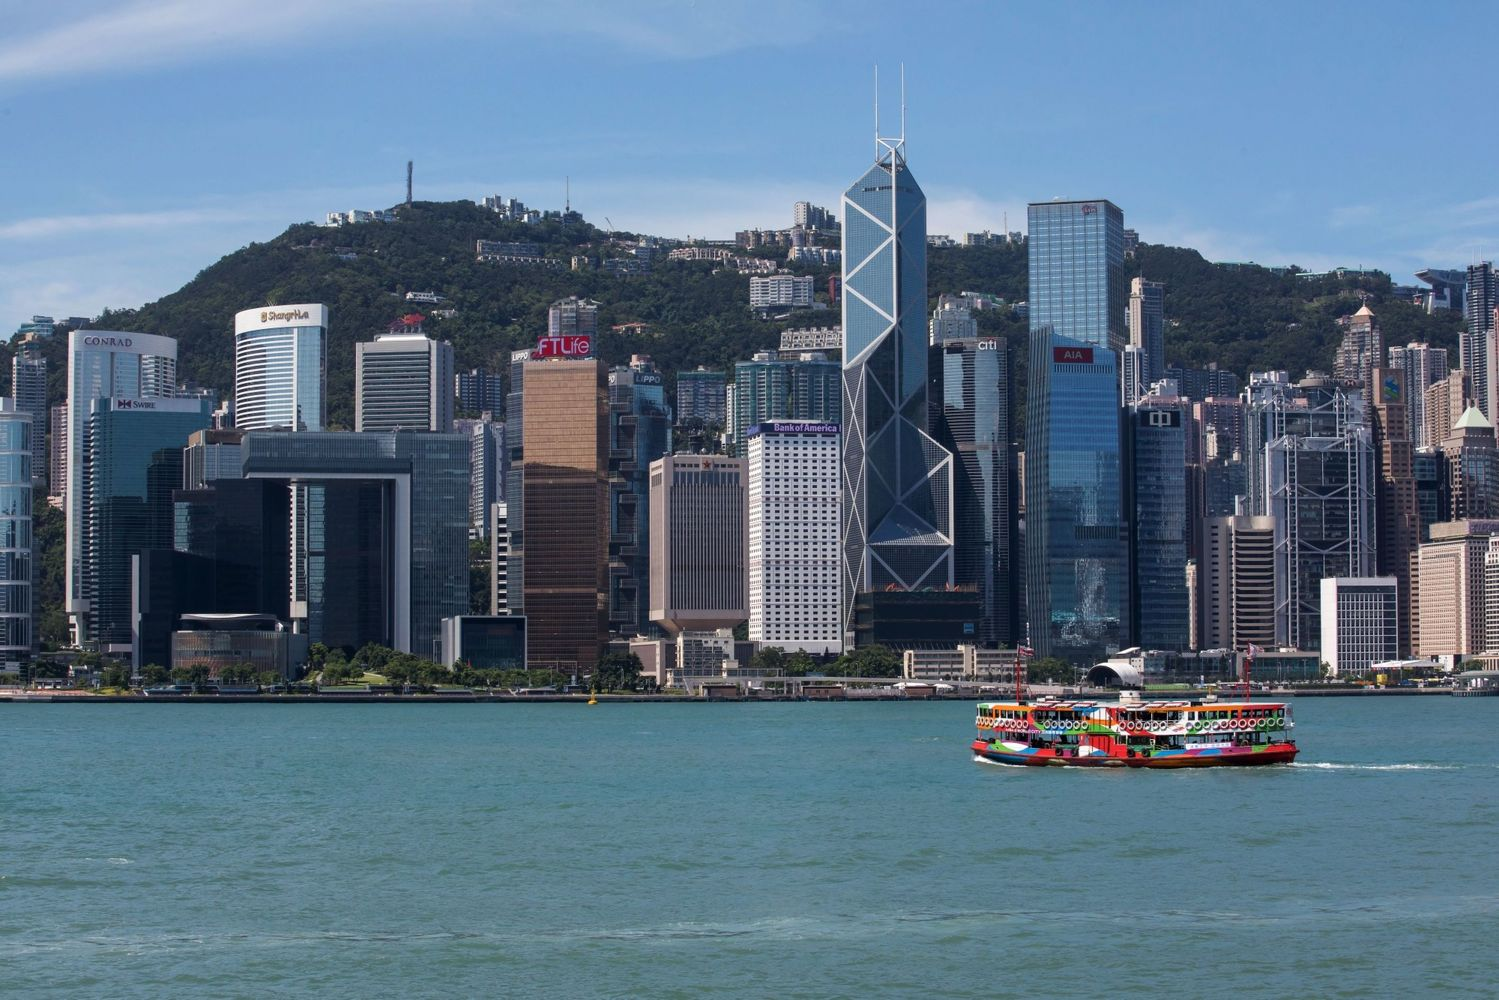 The outlook for the tourism sector in Hong Kong, which was already badly hit by months-long protests, will likely remain lacklustre due to the Covid-19 situation (Photo: Bloomberg)